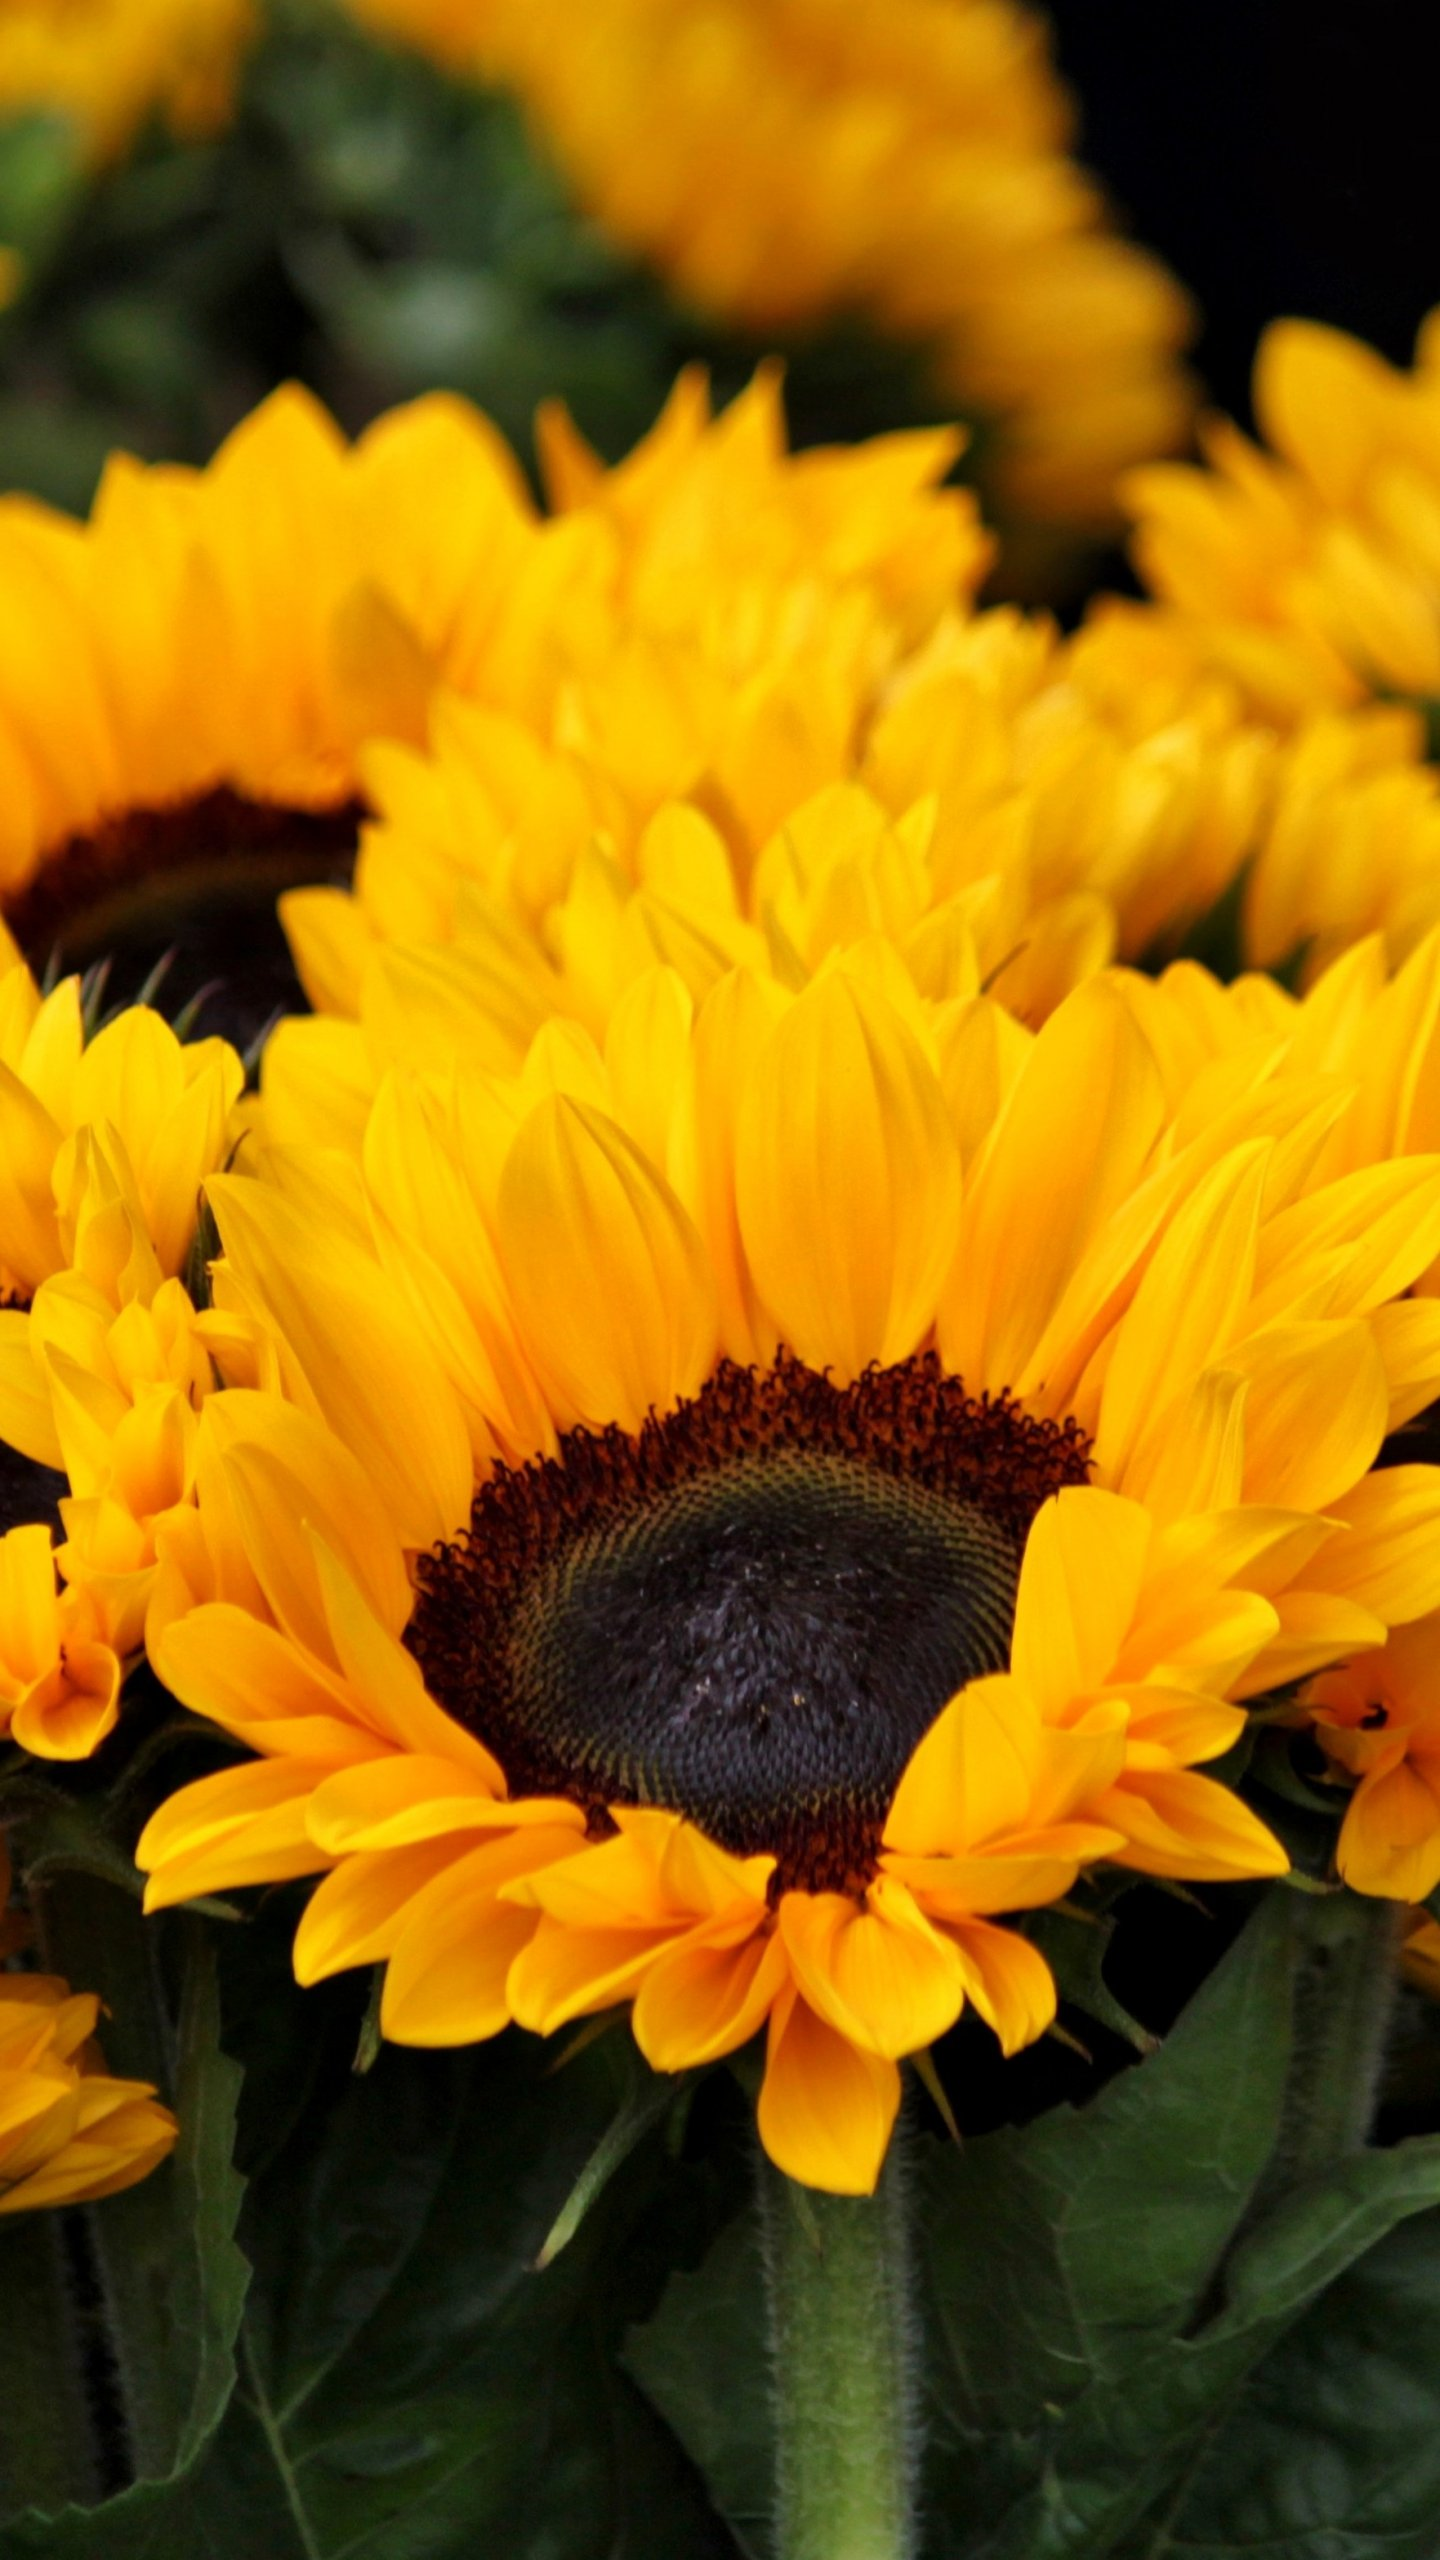 Sunflowers Wallpaper Iphone Android Desktop Backgrounds